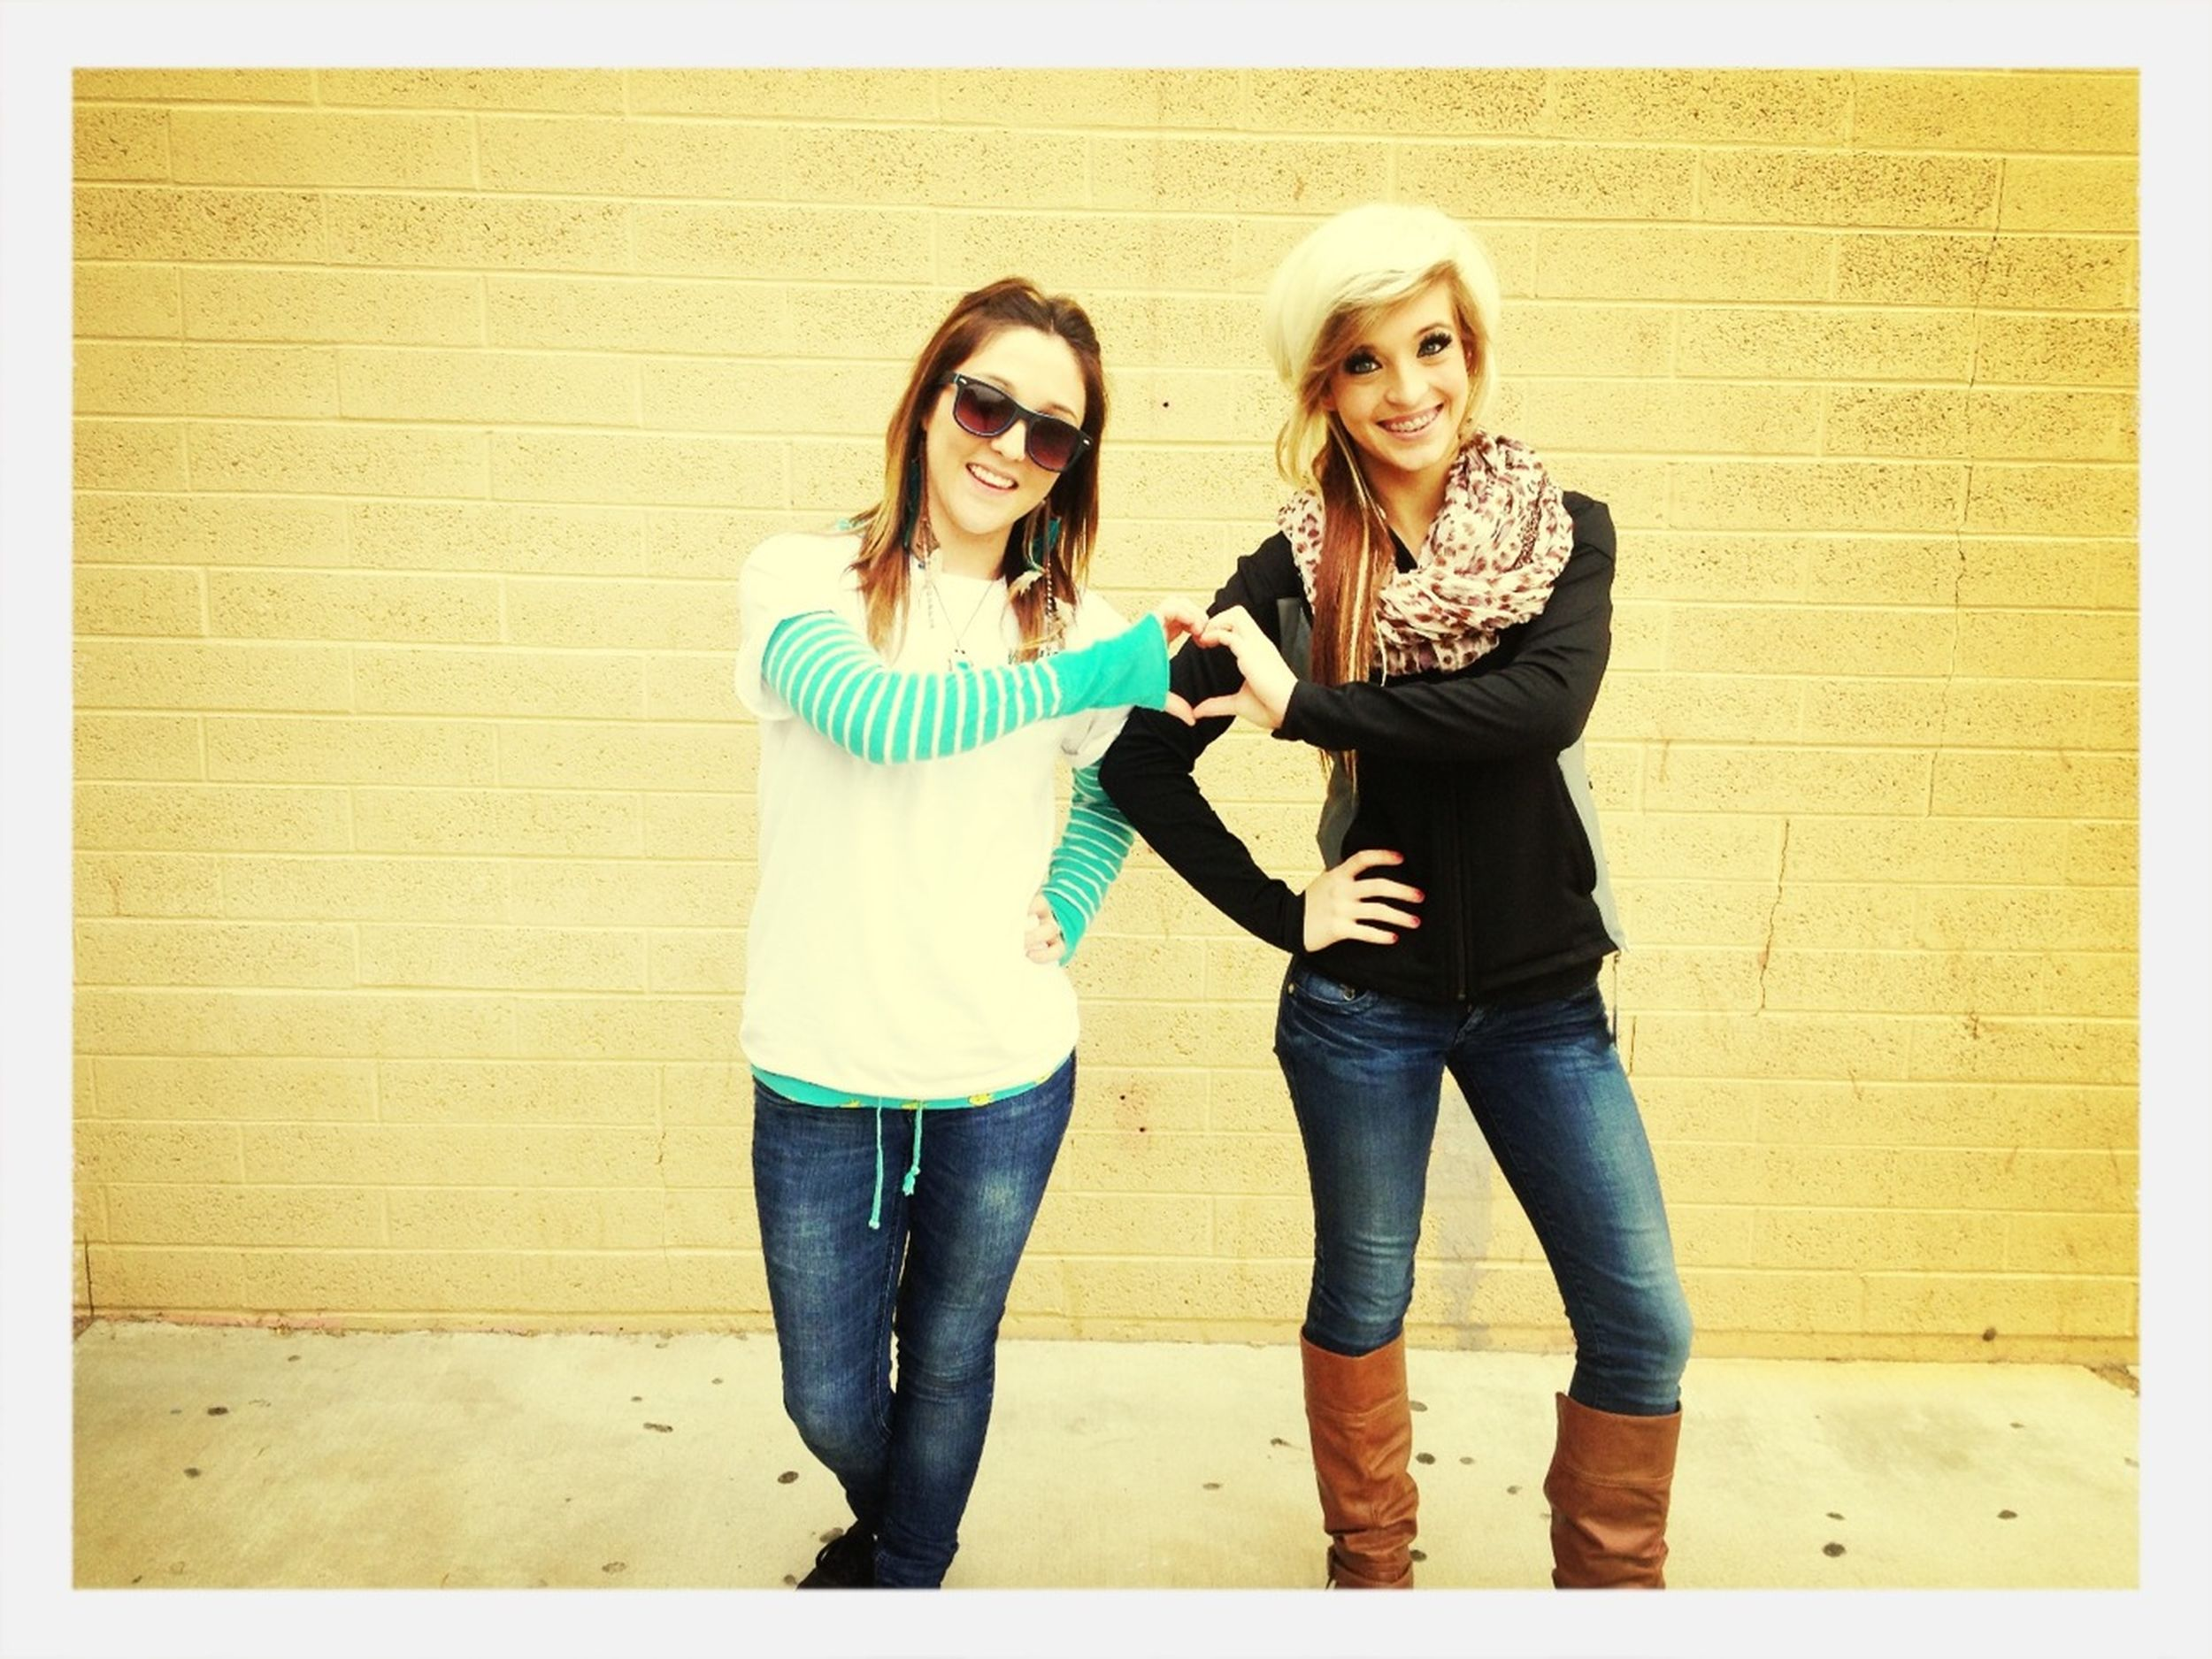 Me And My Sissy!